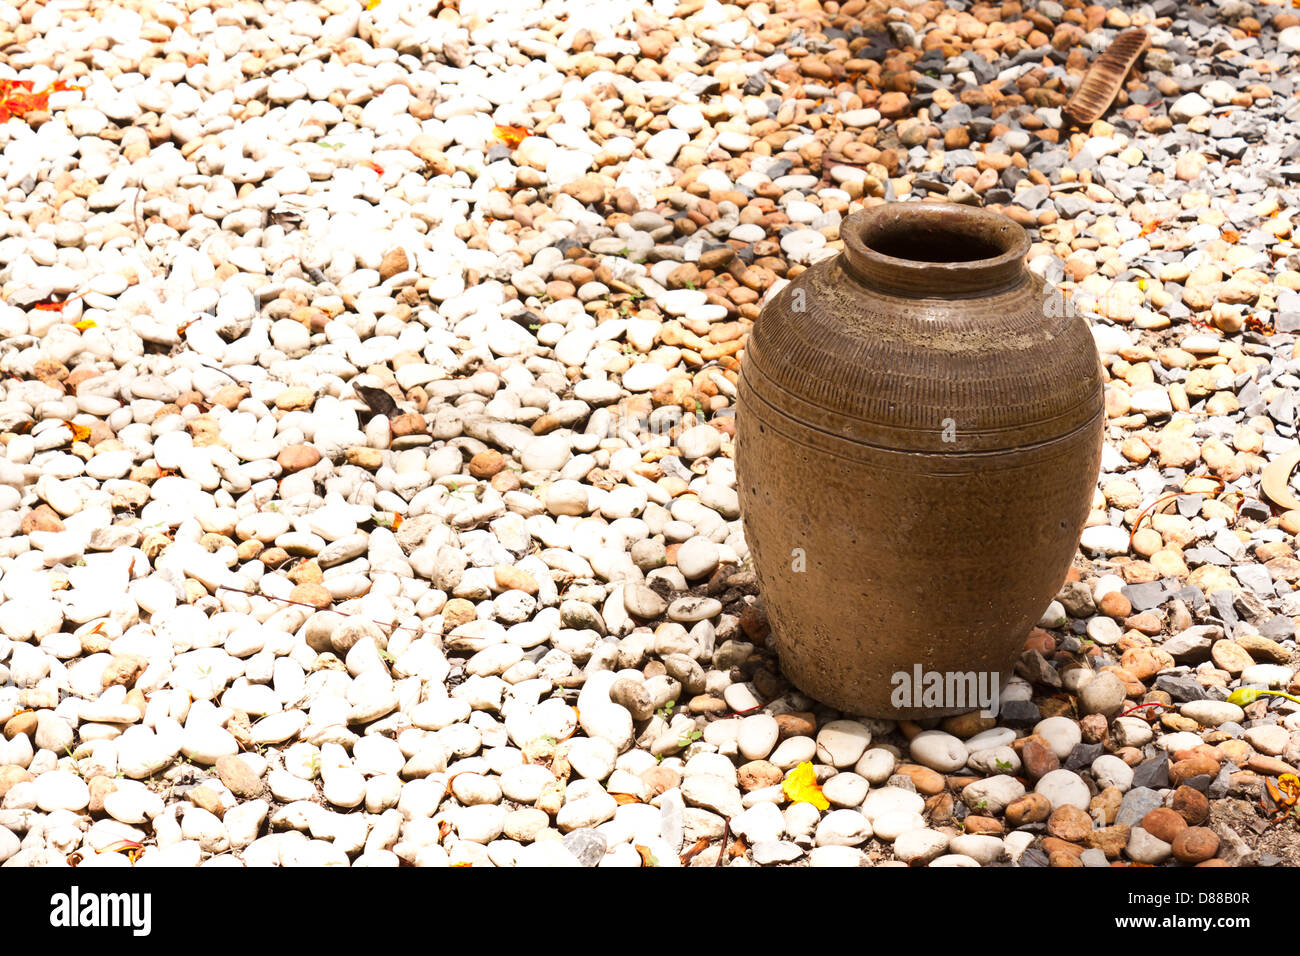 jar on a small white stone - Stock Image